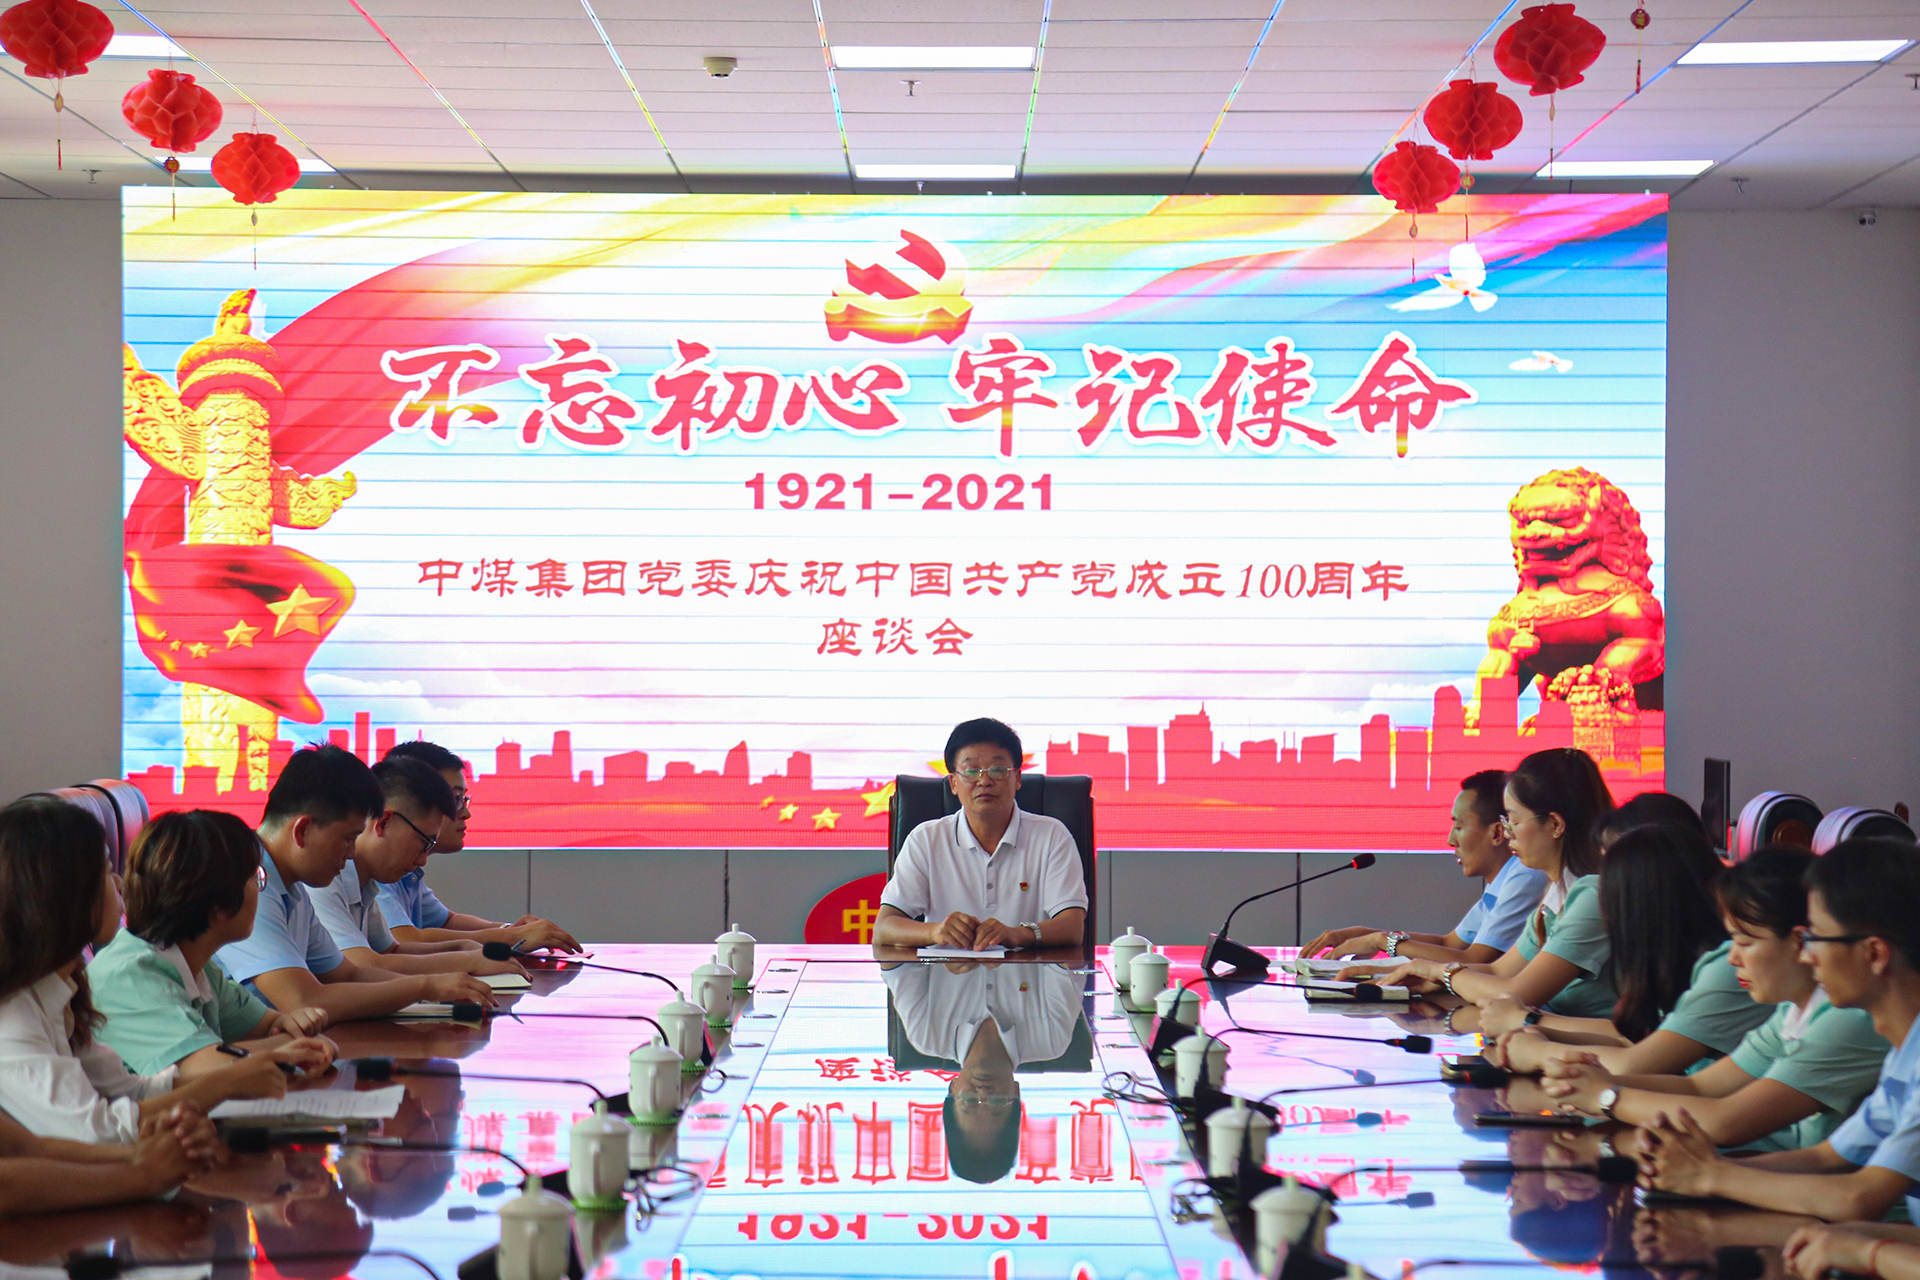 The Party Committee Of China Coal Group Launched A Series Of Activities To Celebrate The 100th Anniversary Of The Founding Of The Communist Party Of China